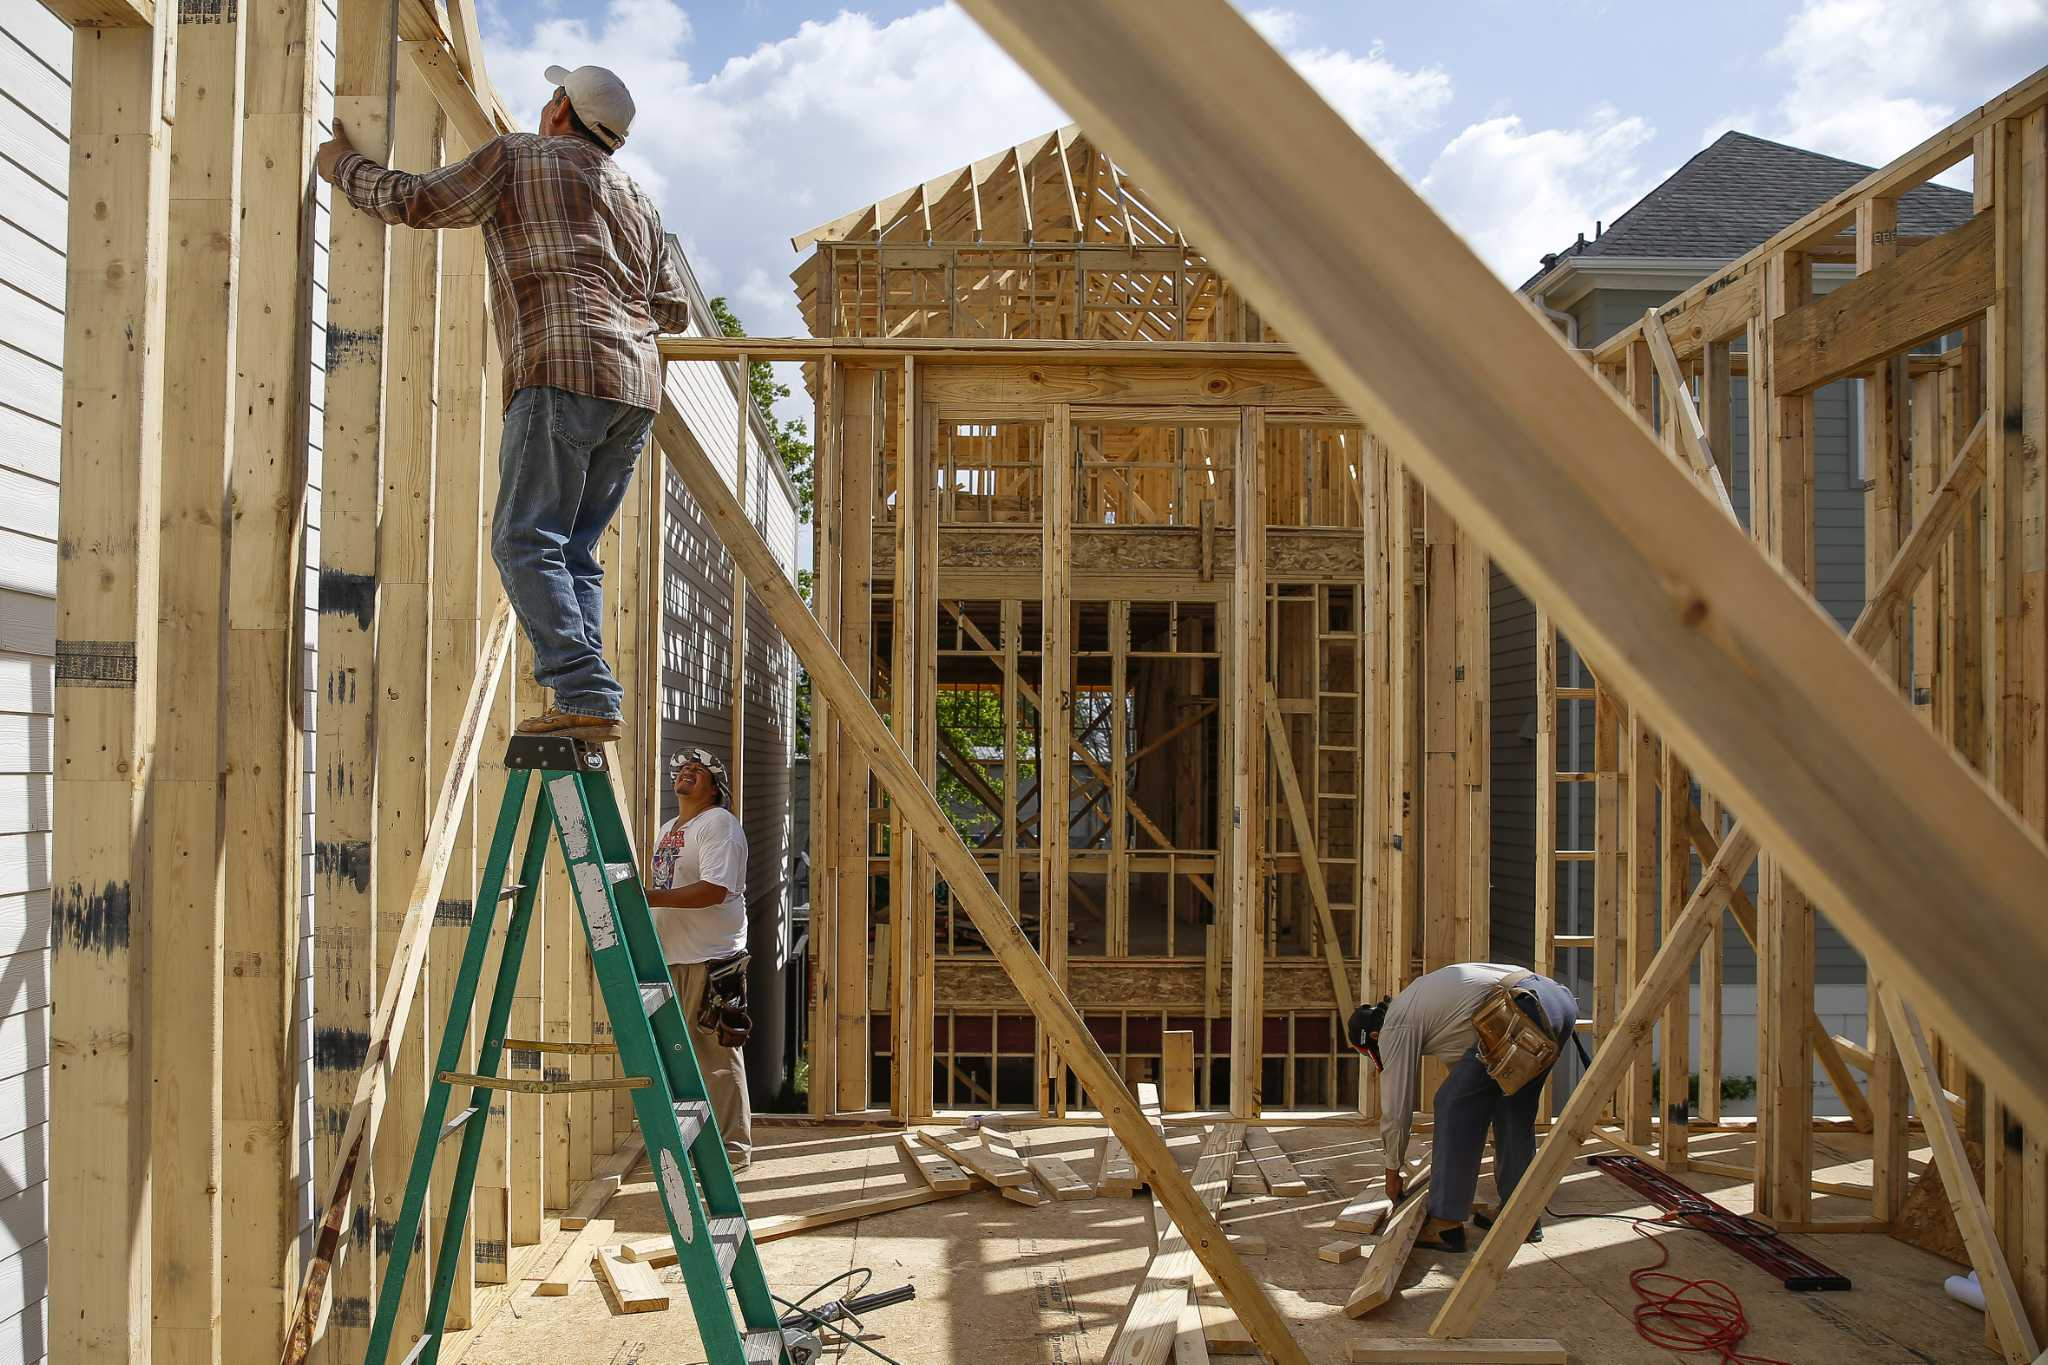 Texas builders fear fallout of immigration crackdown on workforce ...